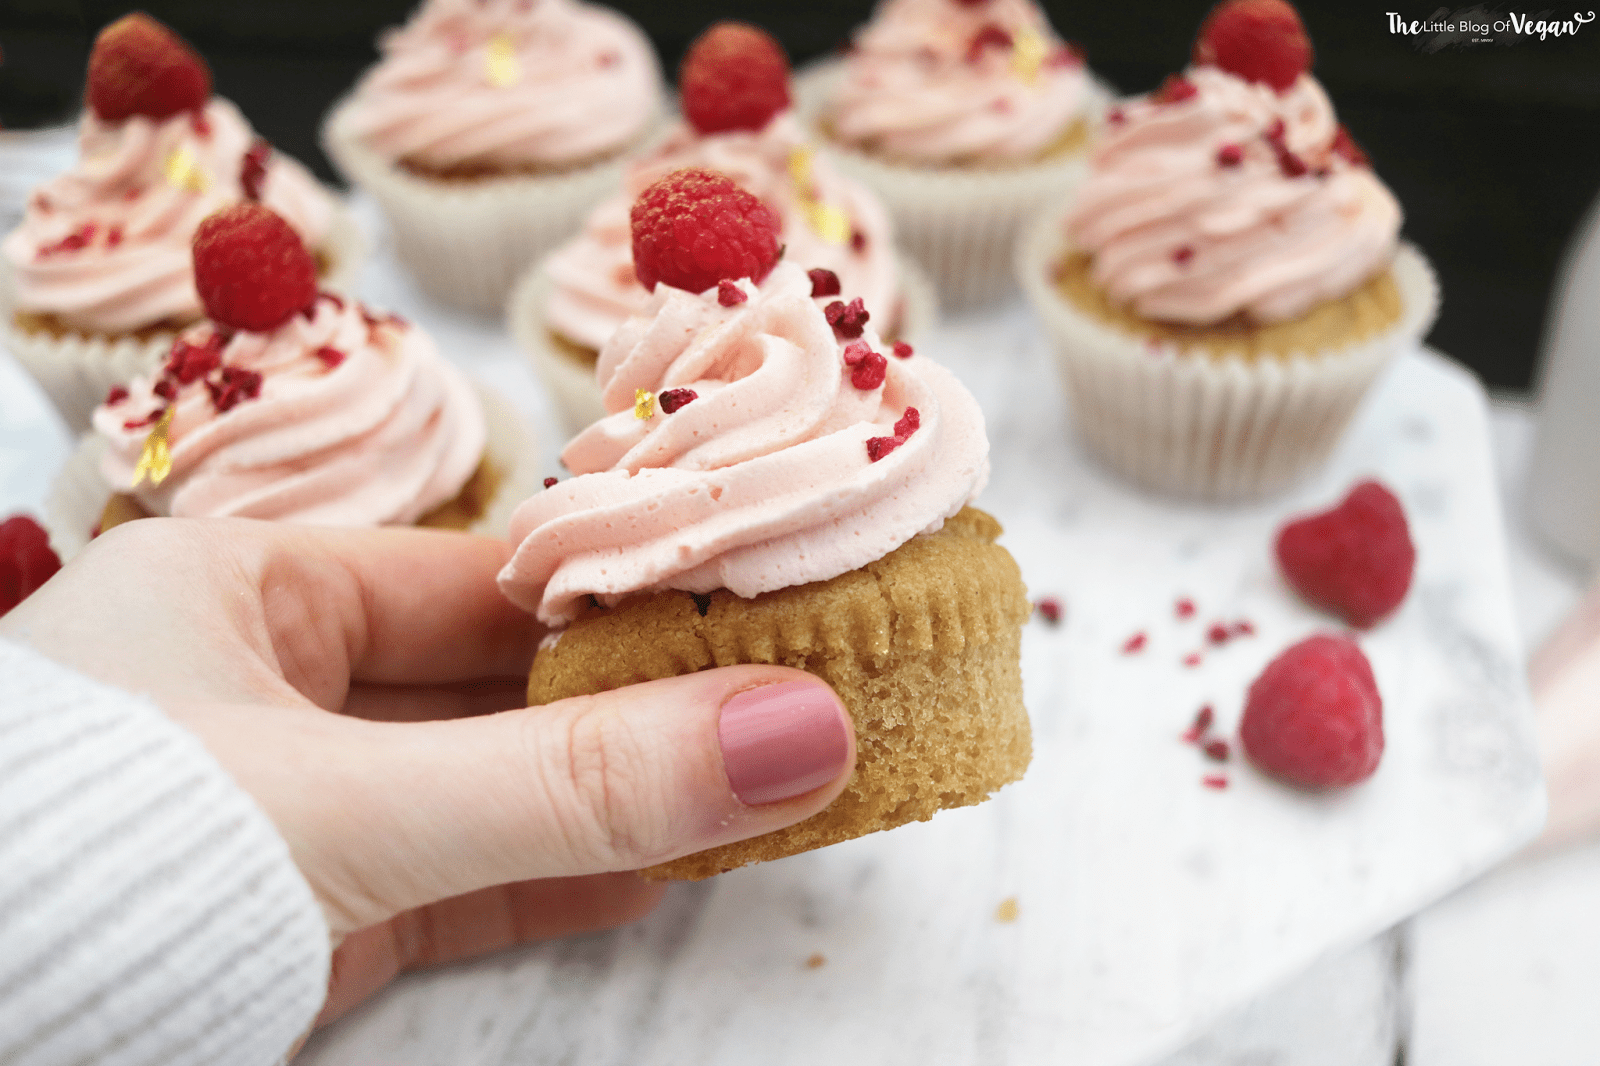 Egg free vanilla cupcakes with raspberry compote